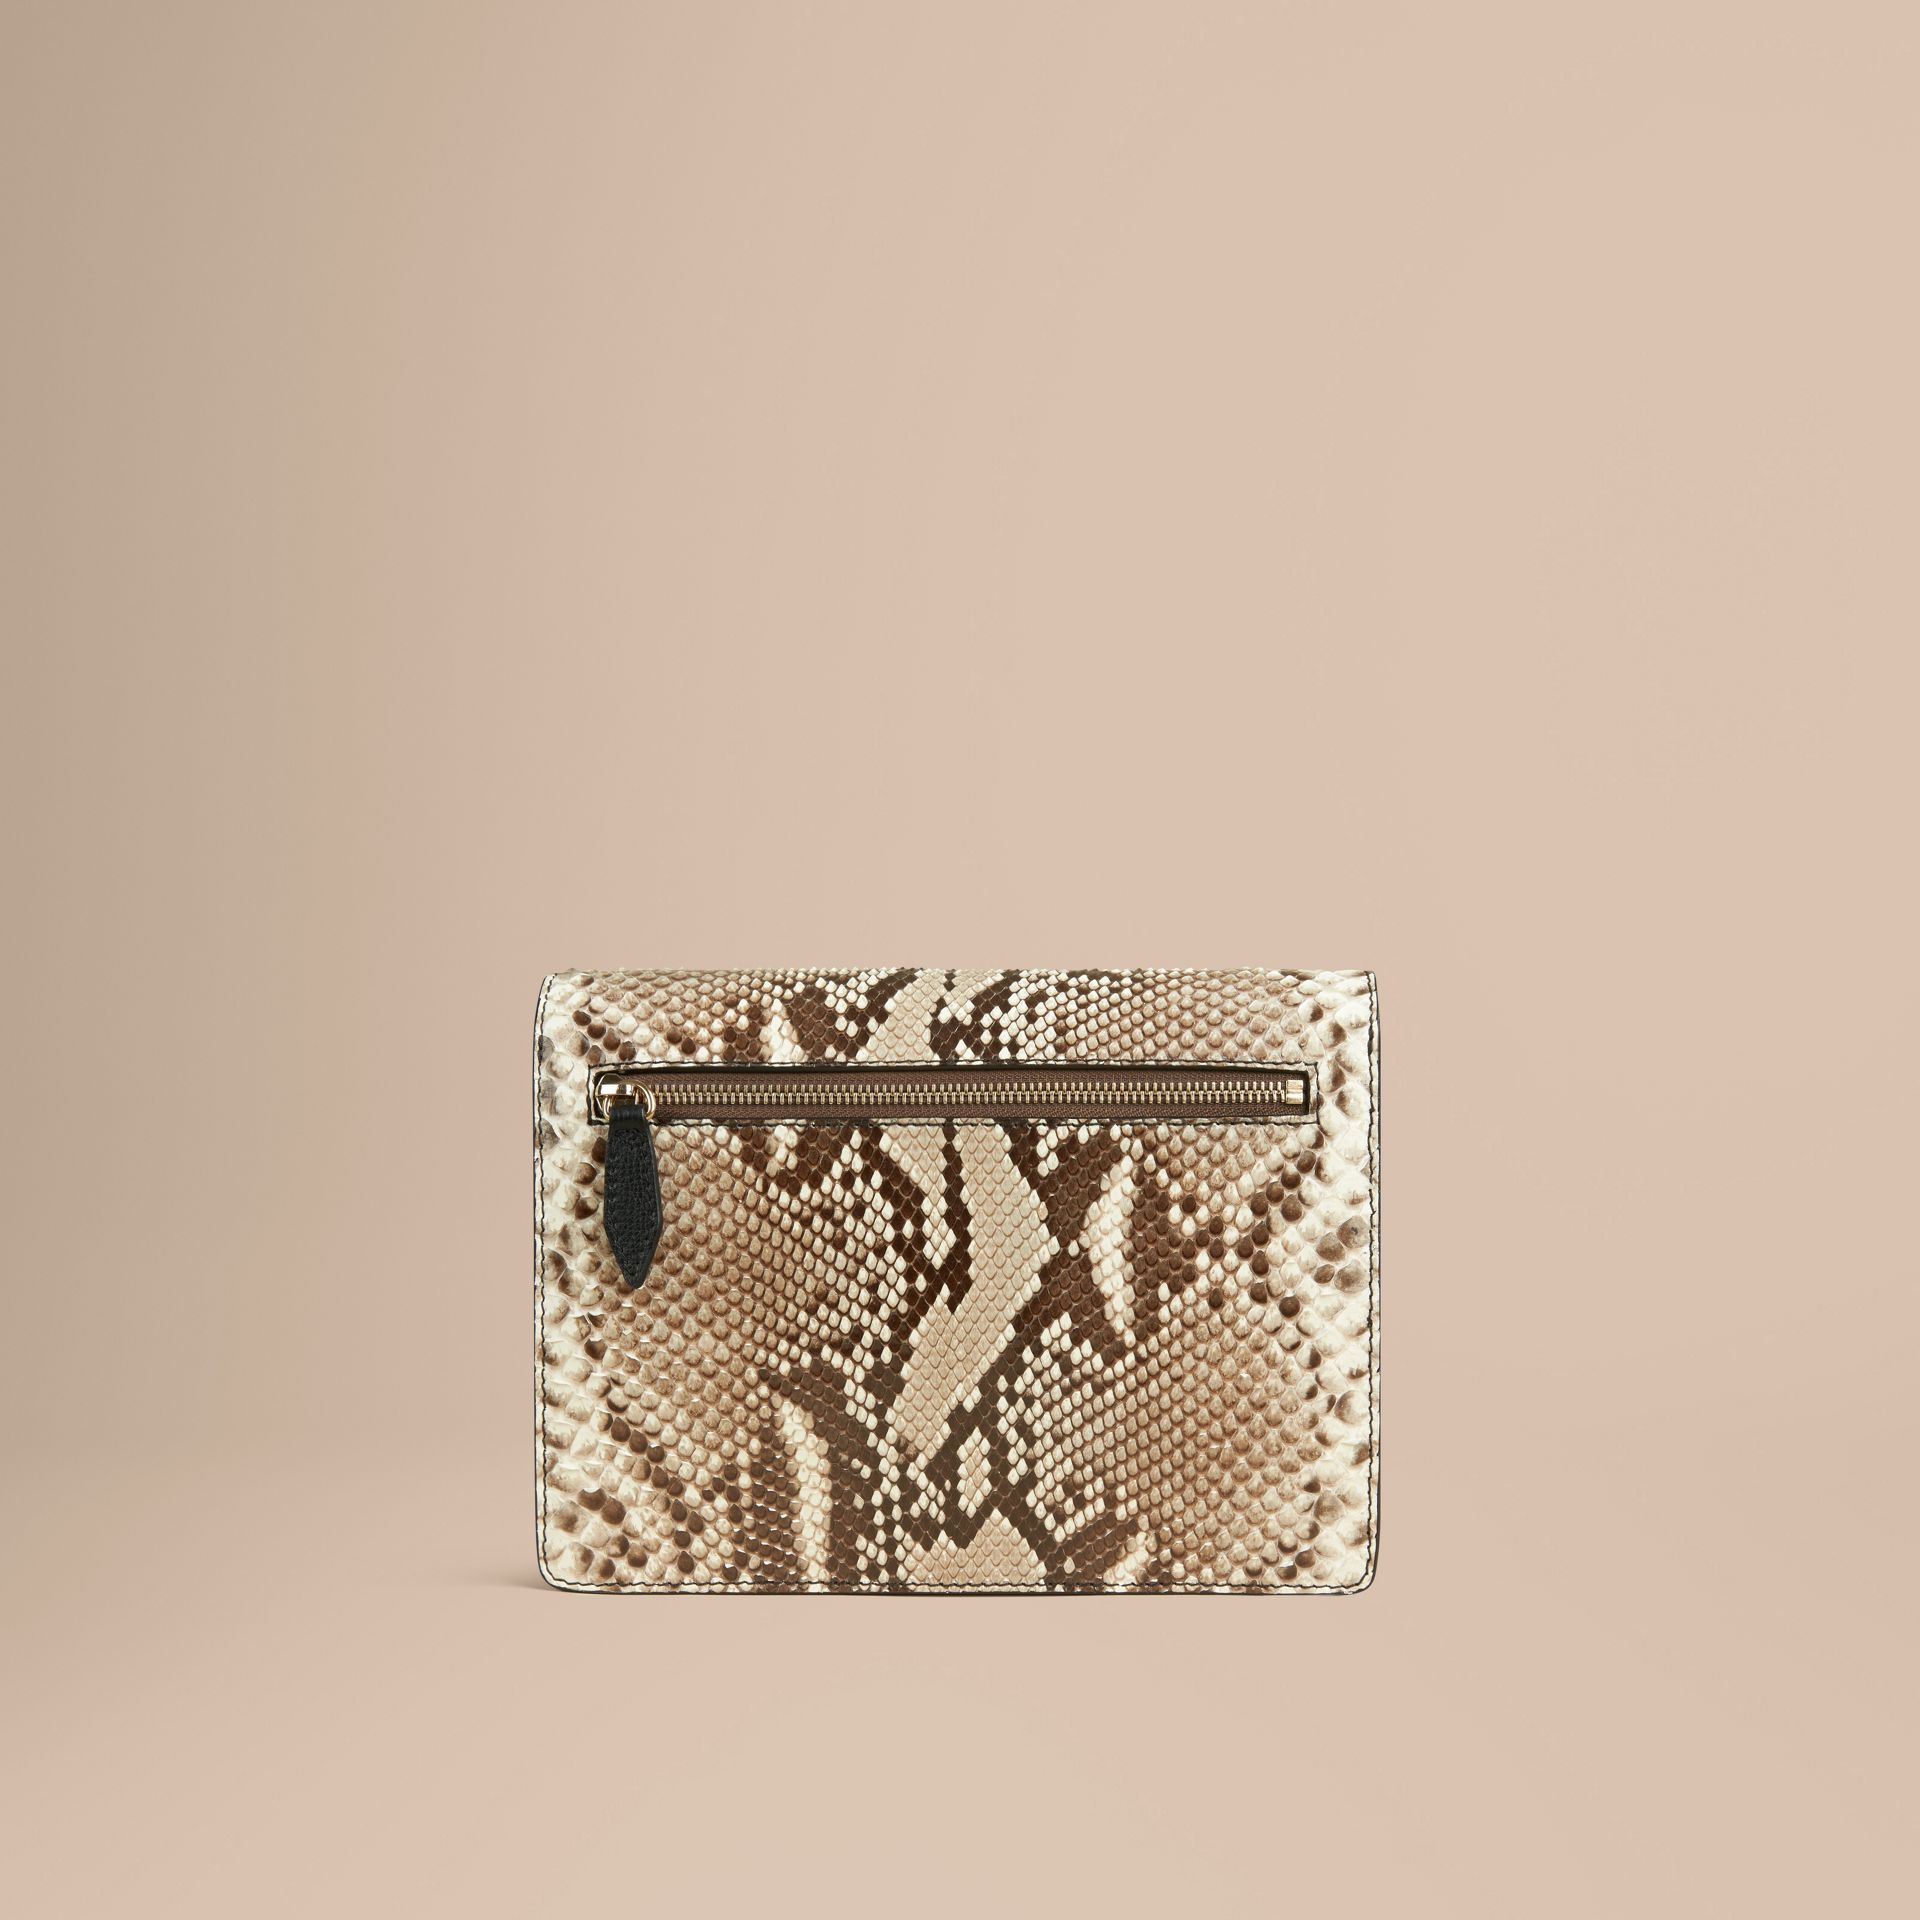 Small Python Crossbody Bag in Natural - Women | Burberry - gallery image 4